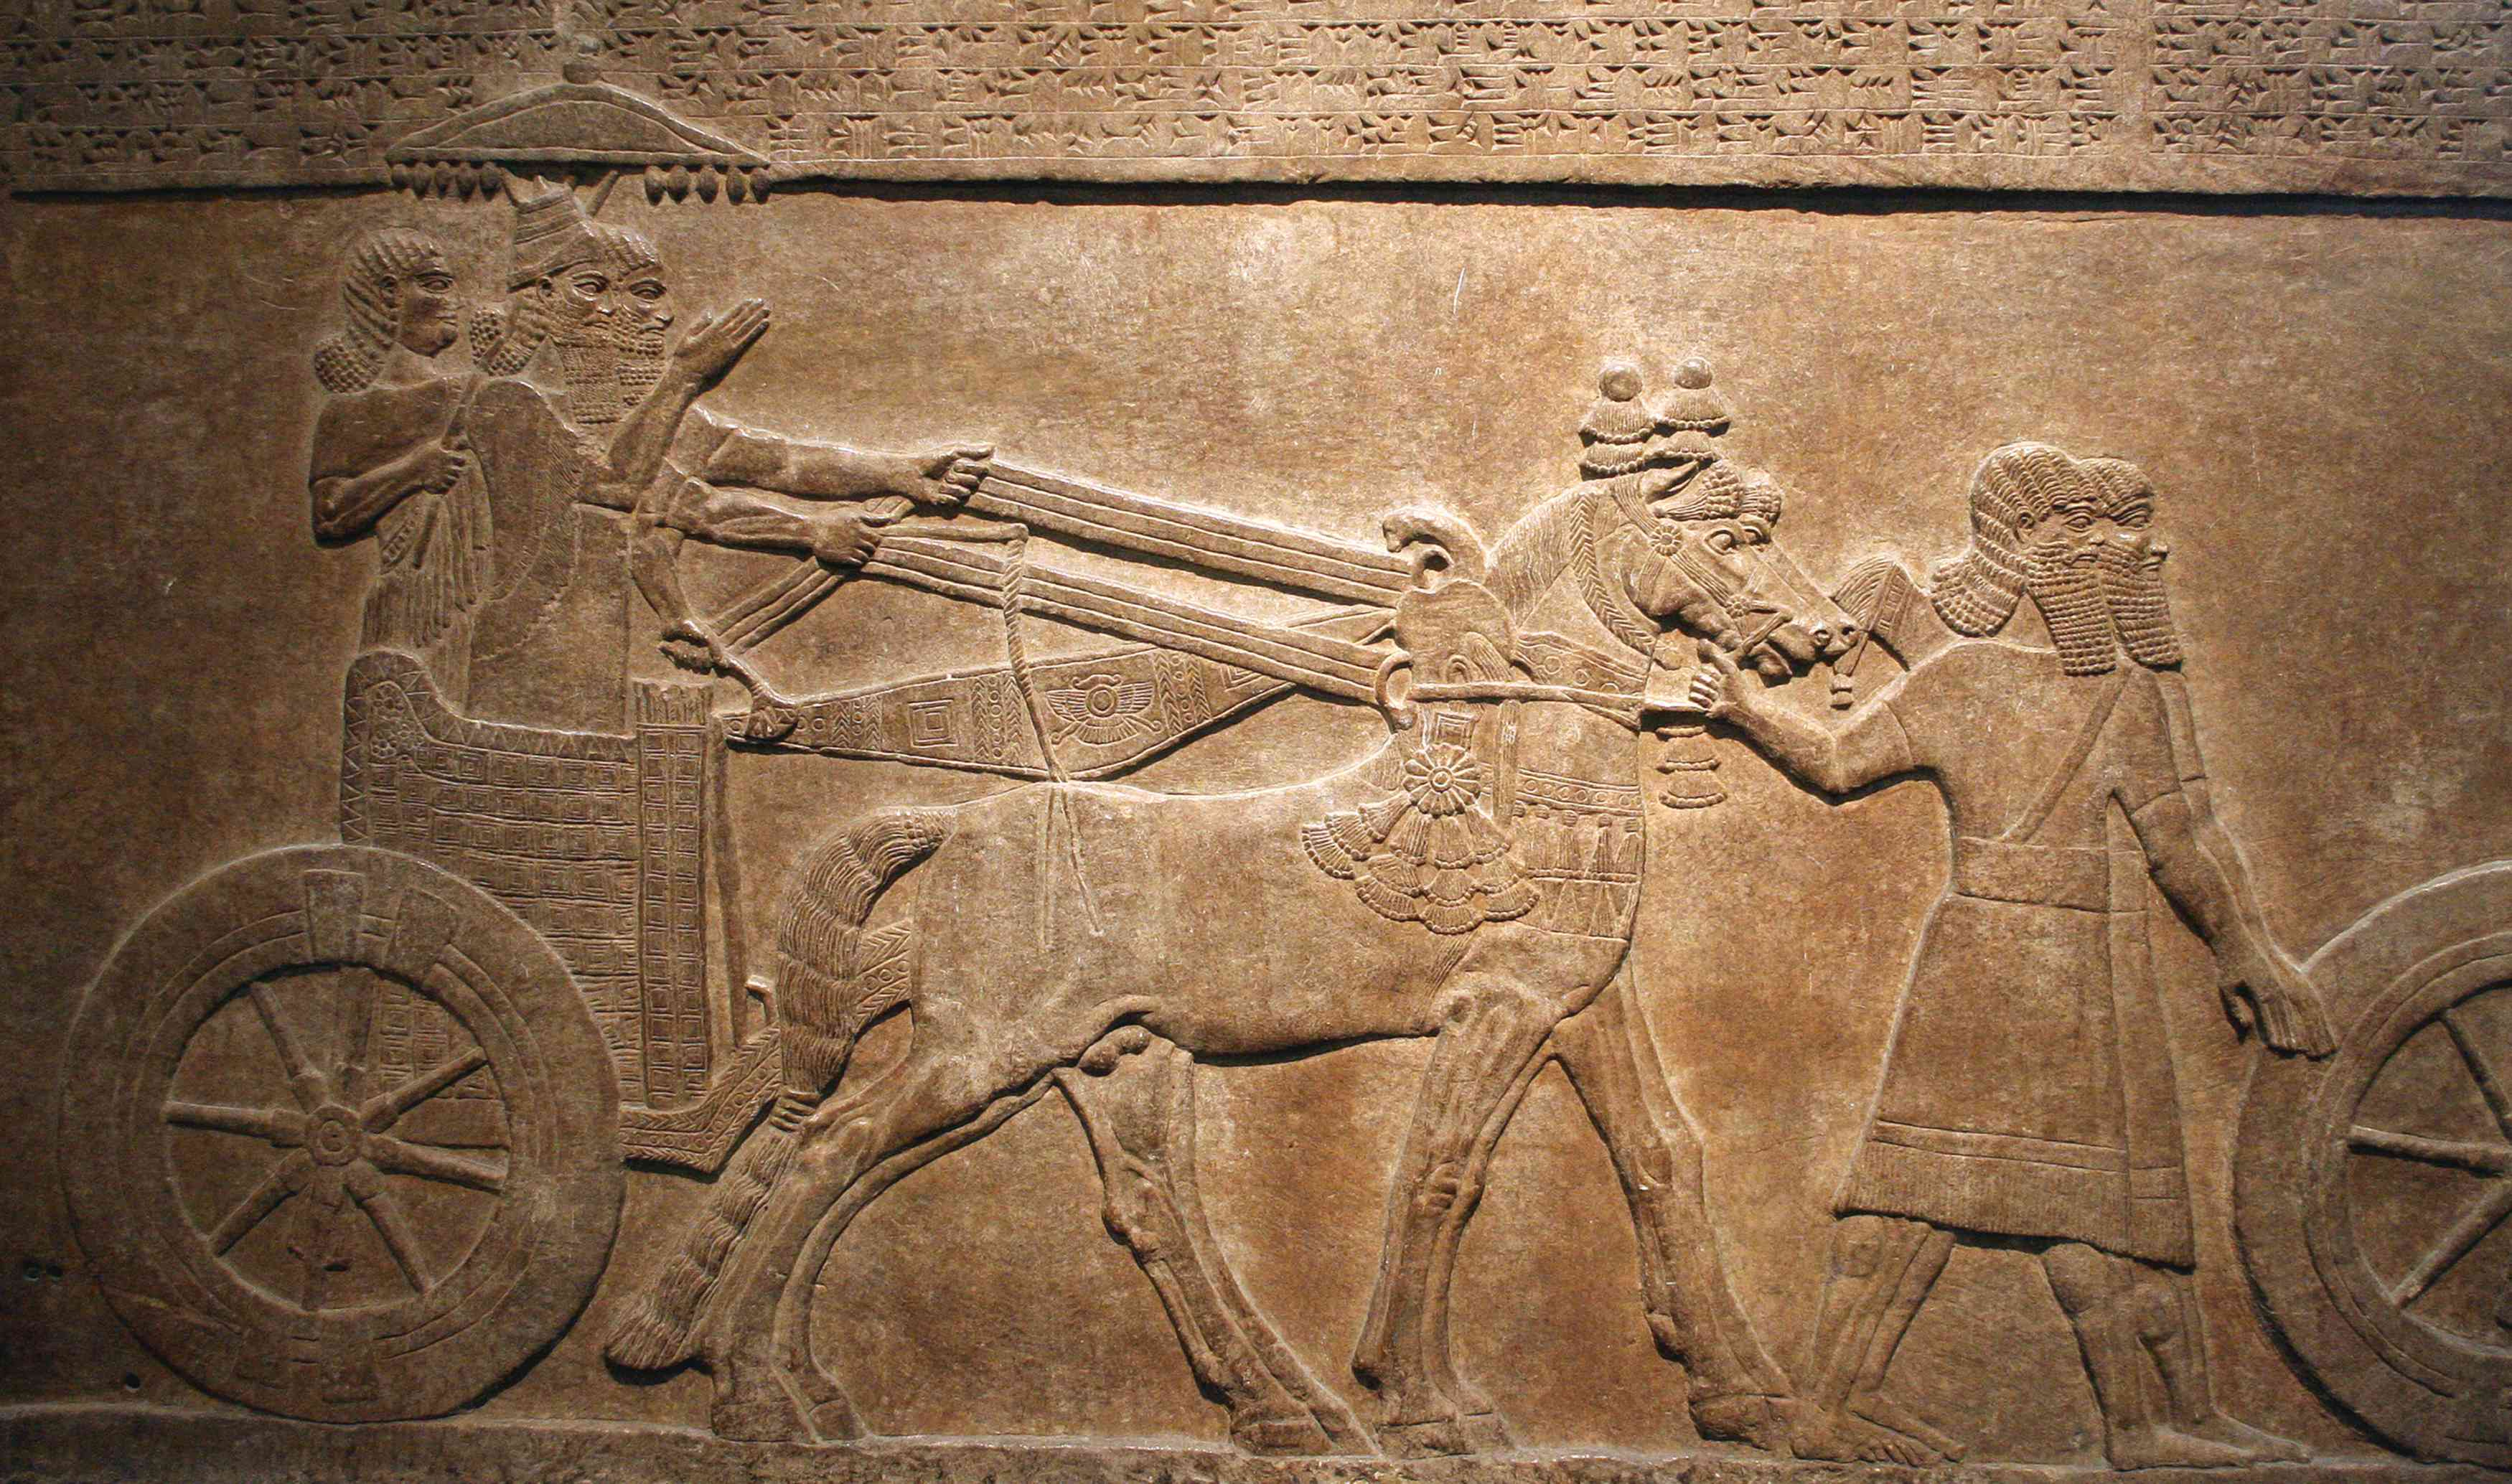 Late Assyrian alabaster relief panel from Central Palace of Tiglath-Pileser III